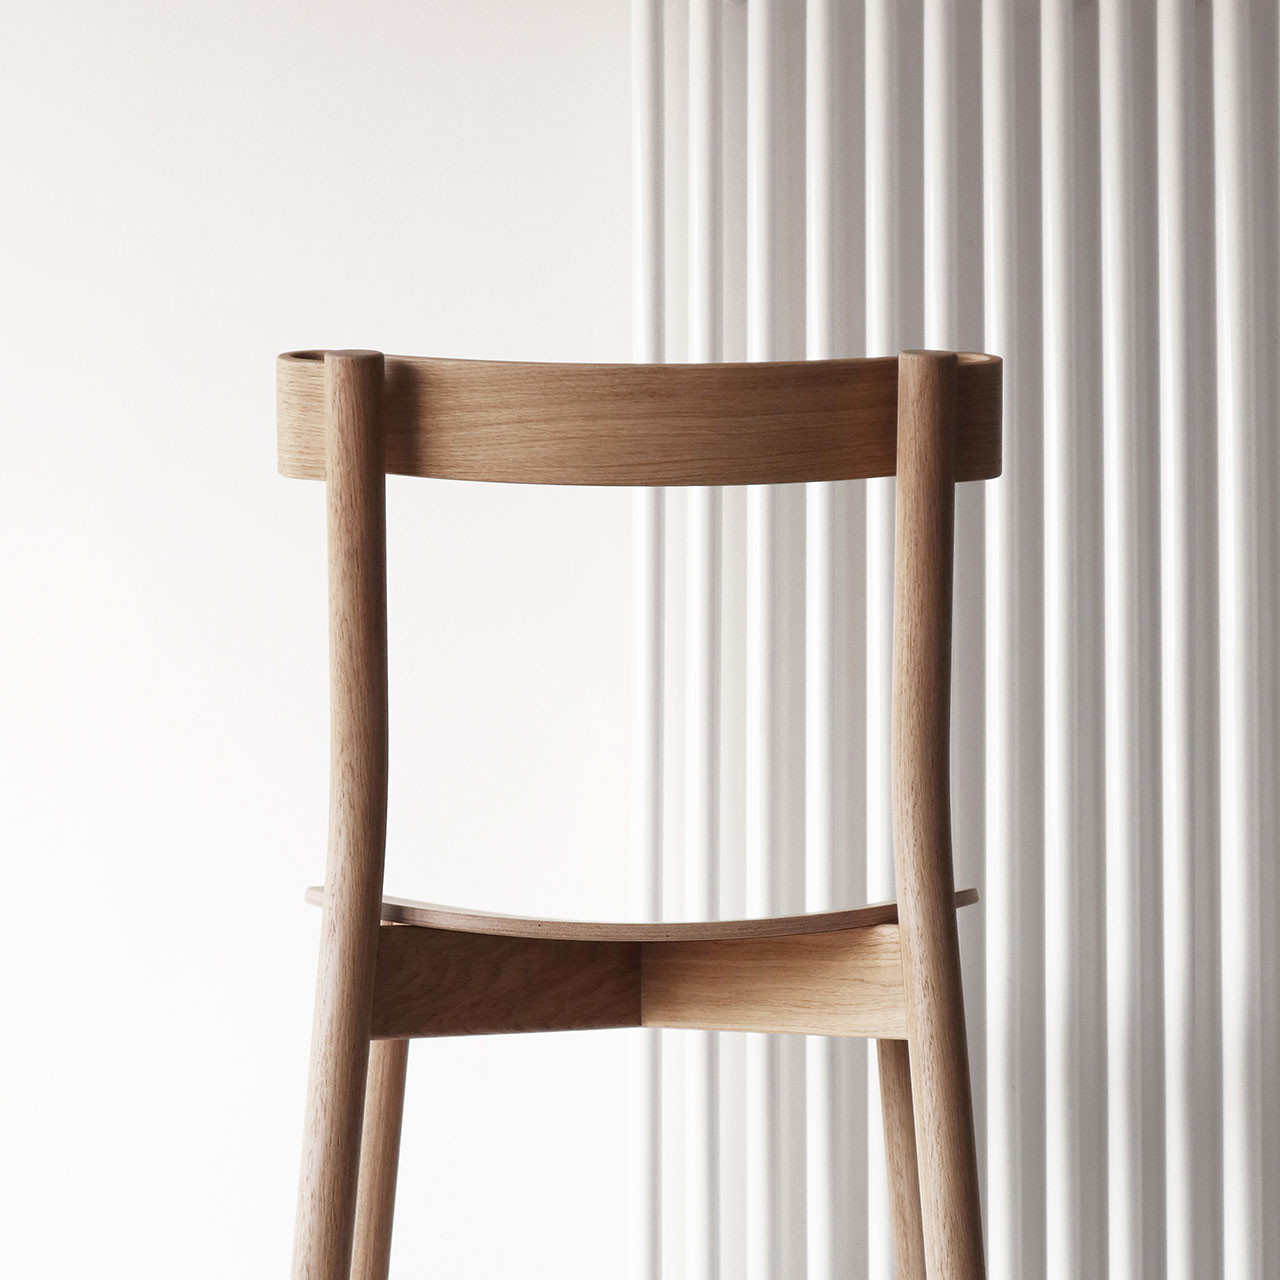 Still Life Chair by Marcel Sigel (LOCAL DESIGN).